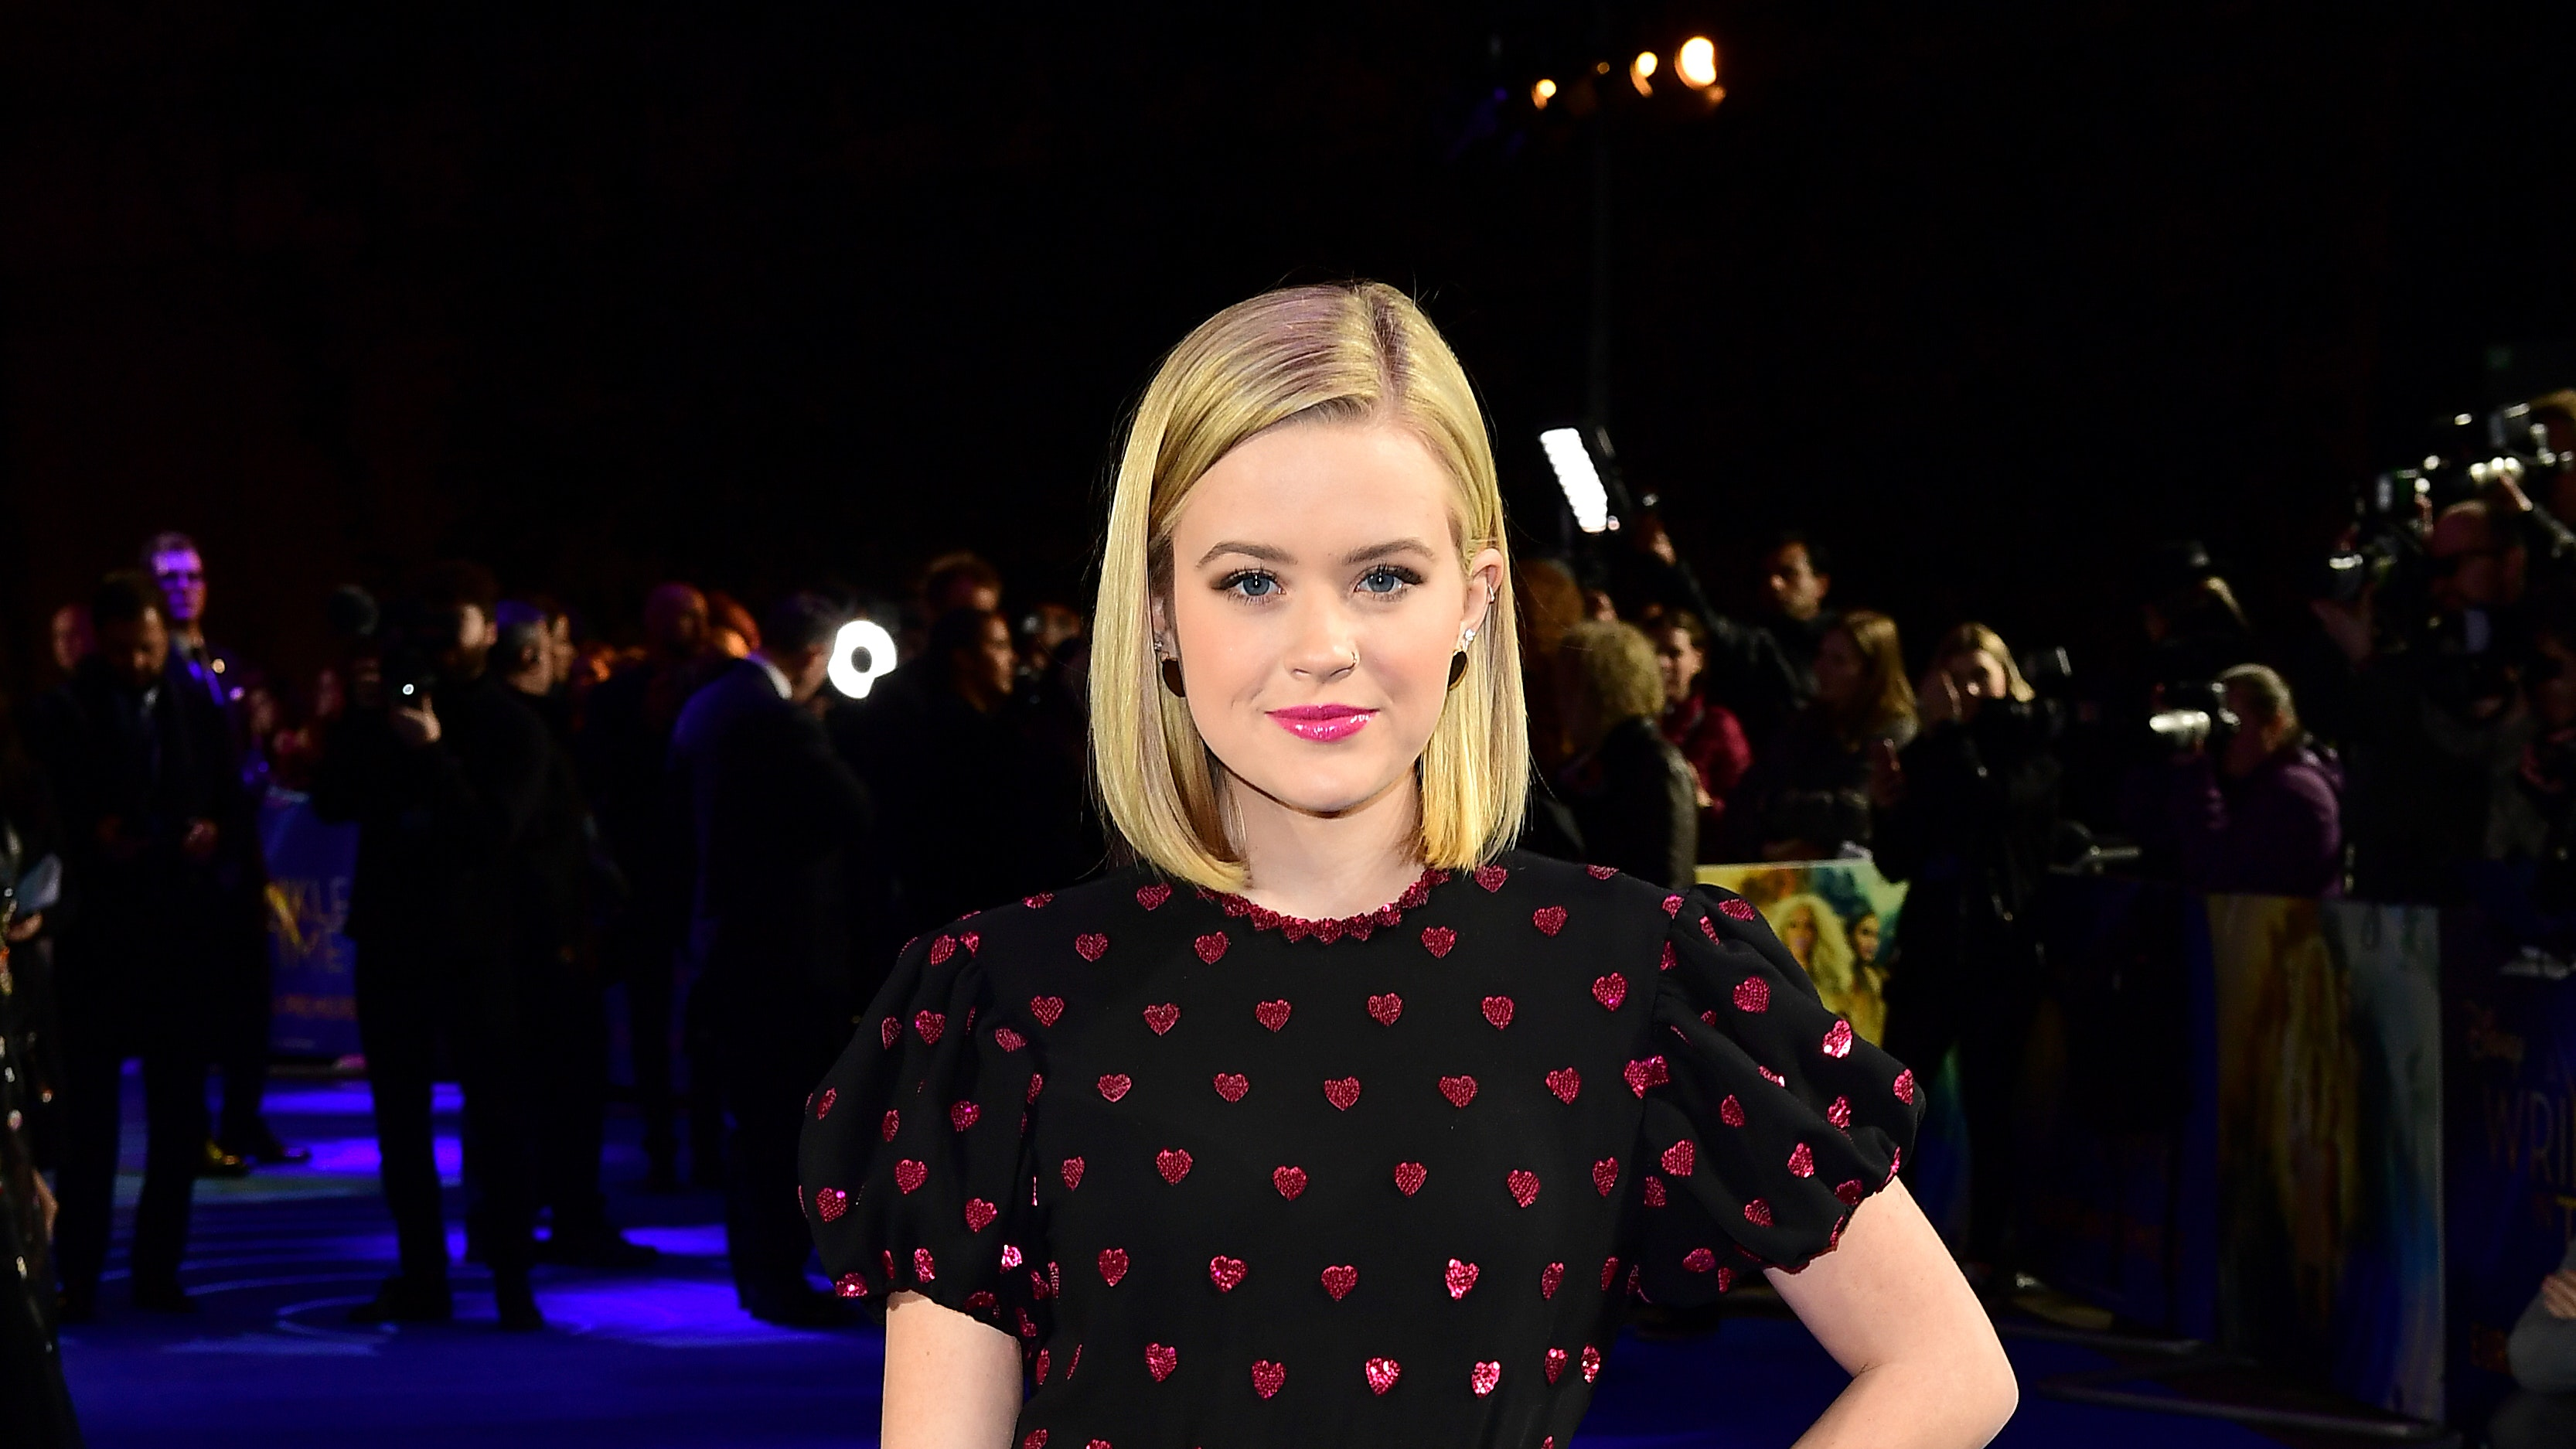 Reese Witherspoon's daughter Ava Phillippe wishes mother happy birthday